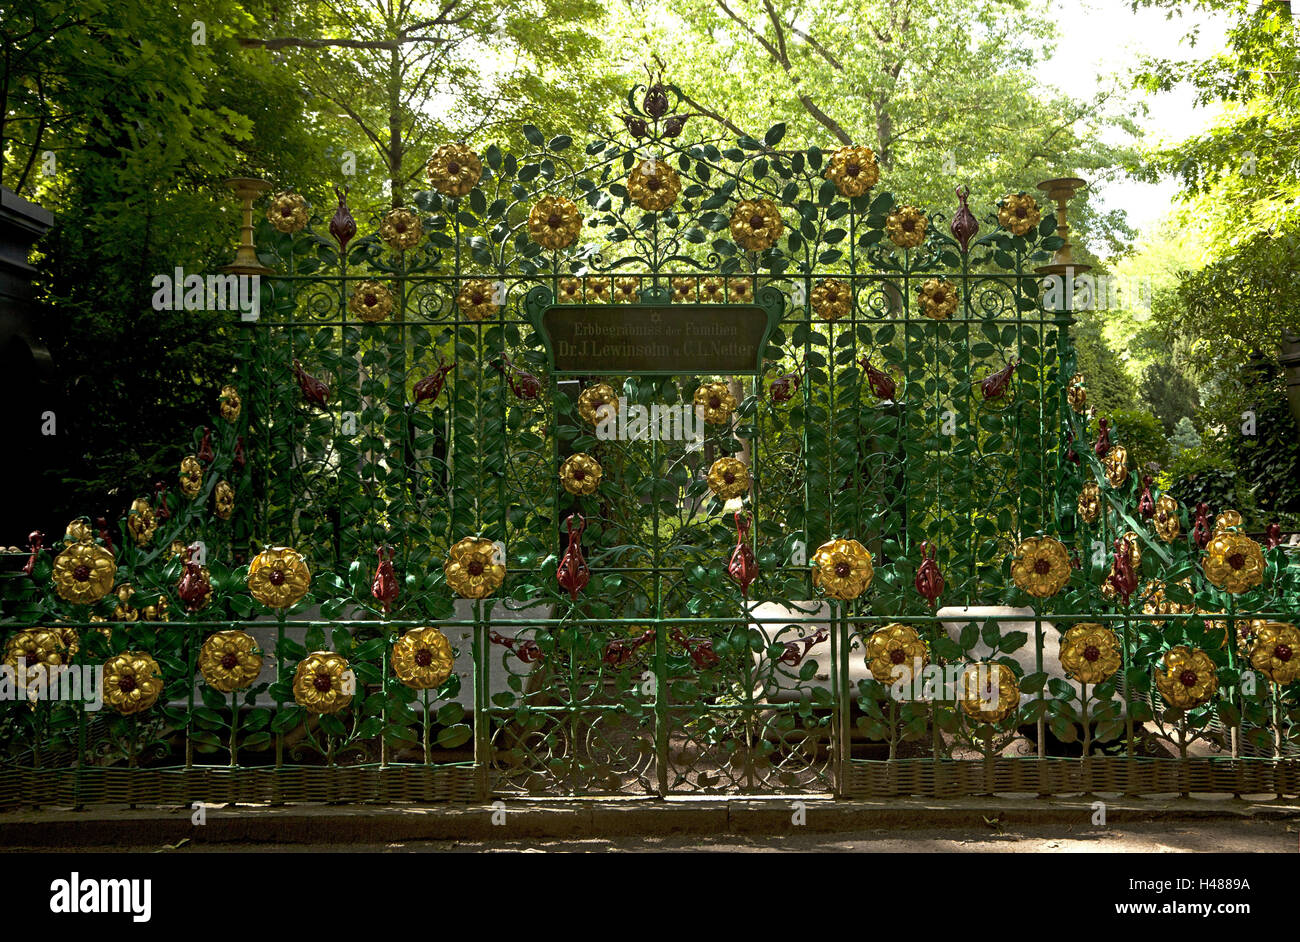 Historically, cemetery, Jugendstil, Judaism, - Stock Image